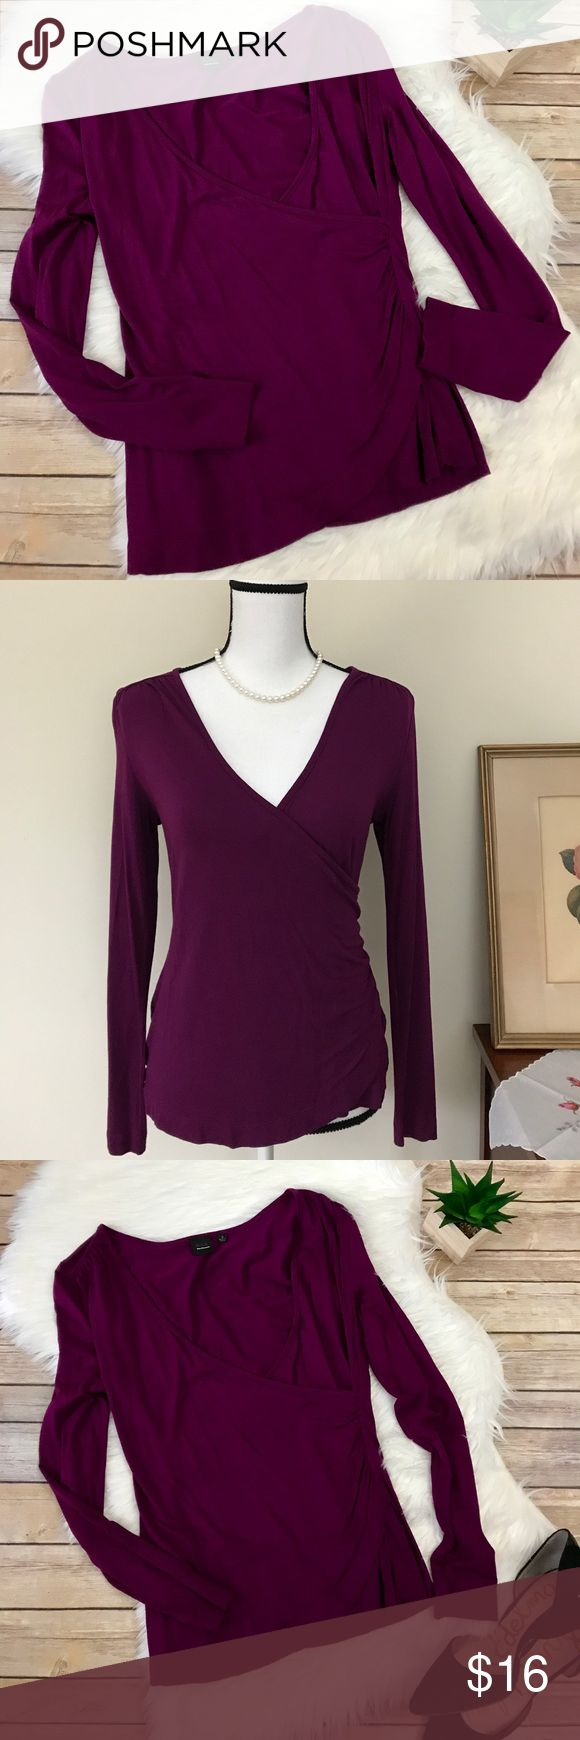 """Black Saks Fifth Avenue Cinched Wrap Top in Wine🌺 Black Sax Fifth Ave. Cinched Wrap Top in Wine. Size S. Beautiful wine colored top that wraps to one side with cinching and pleating detail.  Long sleeve.  Plunging v-neck. Viscose 95% and Spandex 5%, so there's a soft stretch to the material.  Measures approximately 22"""" long;  and 16"""" flat bust.  No stains, holes, pills, frays noted. 🌺 Saks Fifth Avenue Black Label Tops Blouses"""